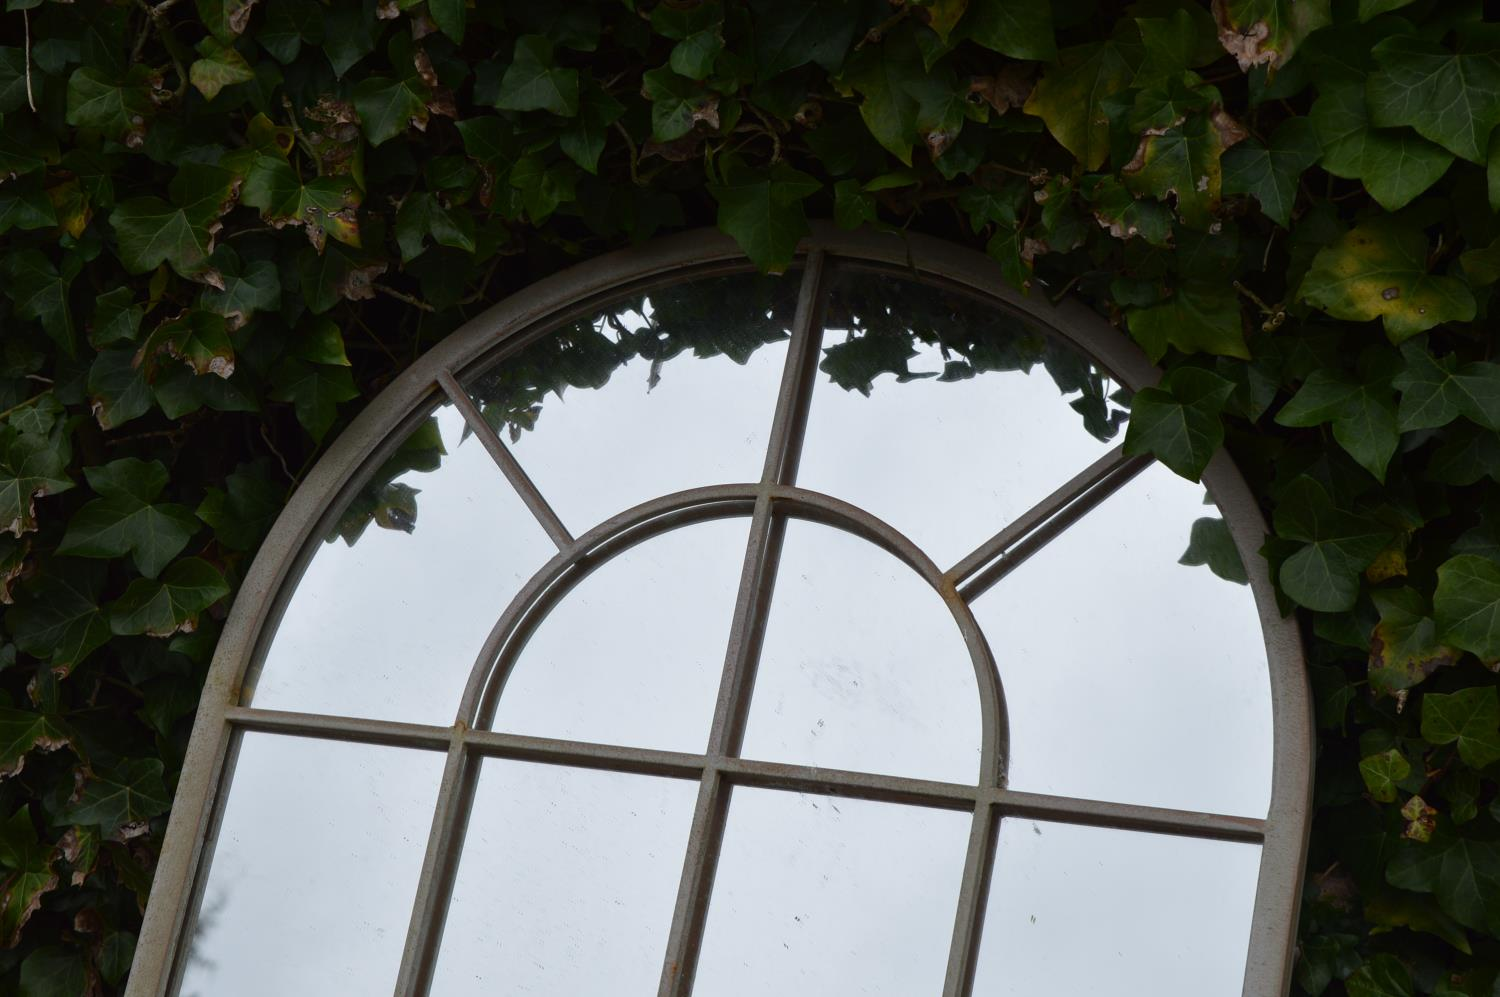 Pair of metal wrought iron window frame mirrors - Image 2 of 2